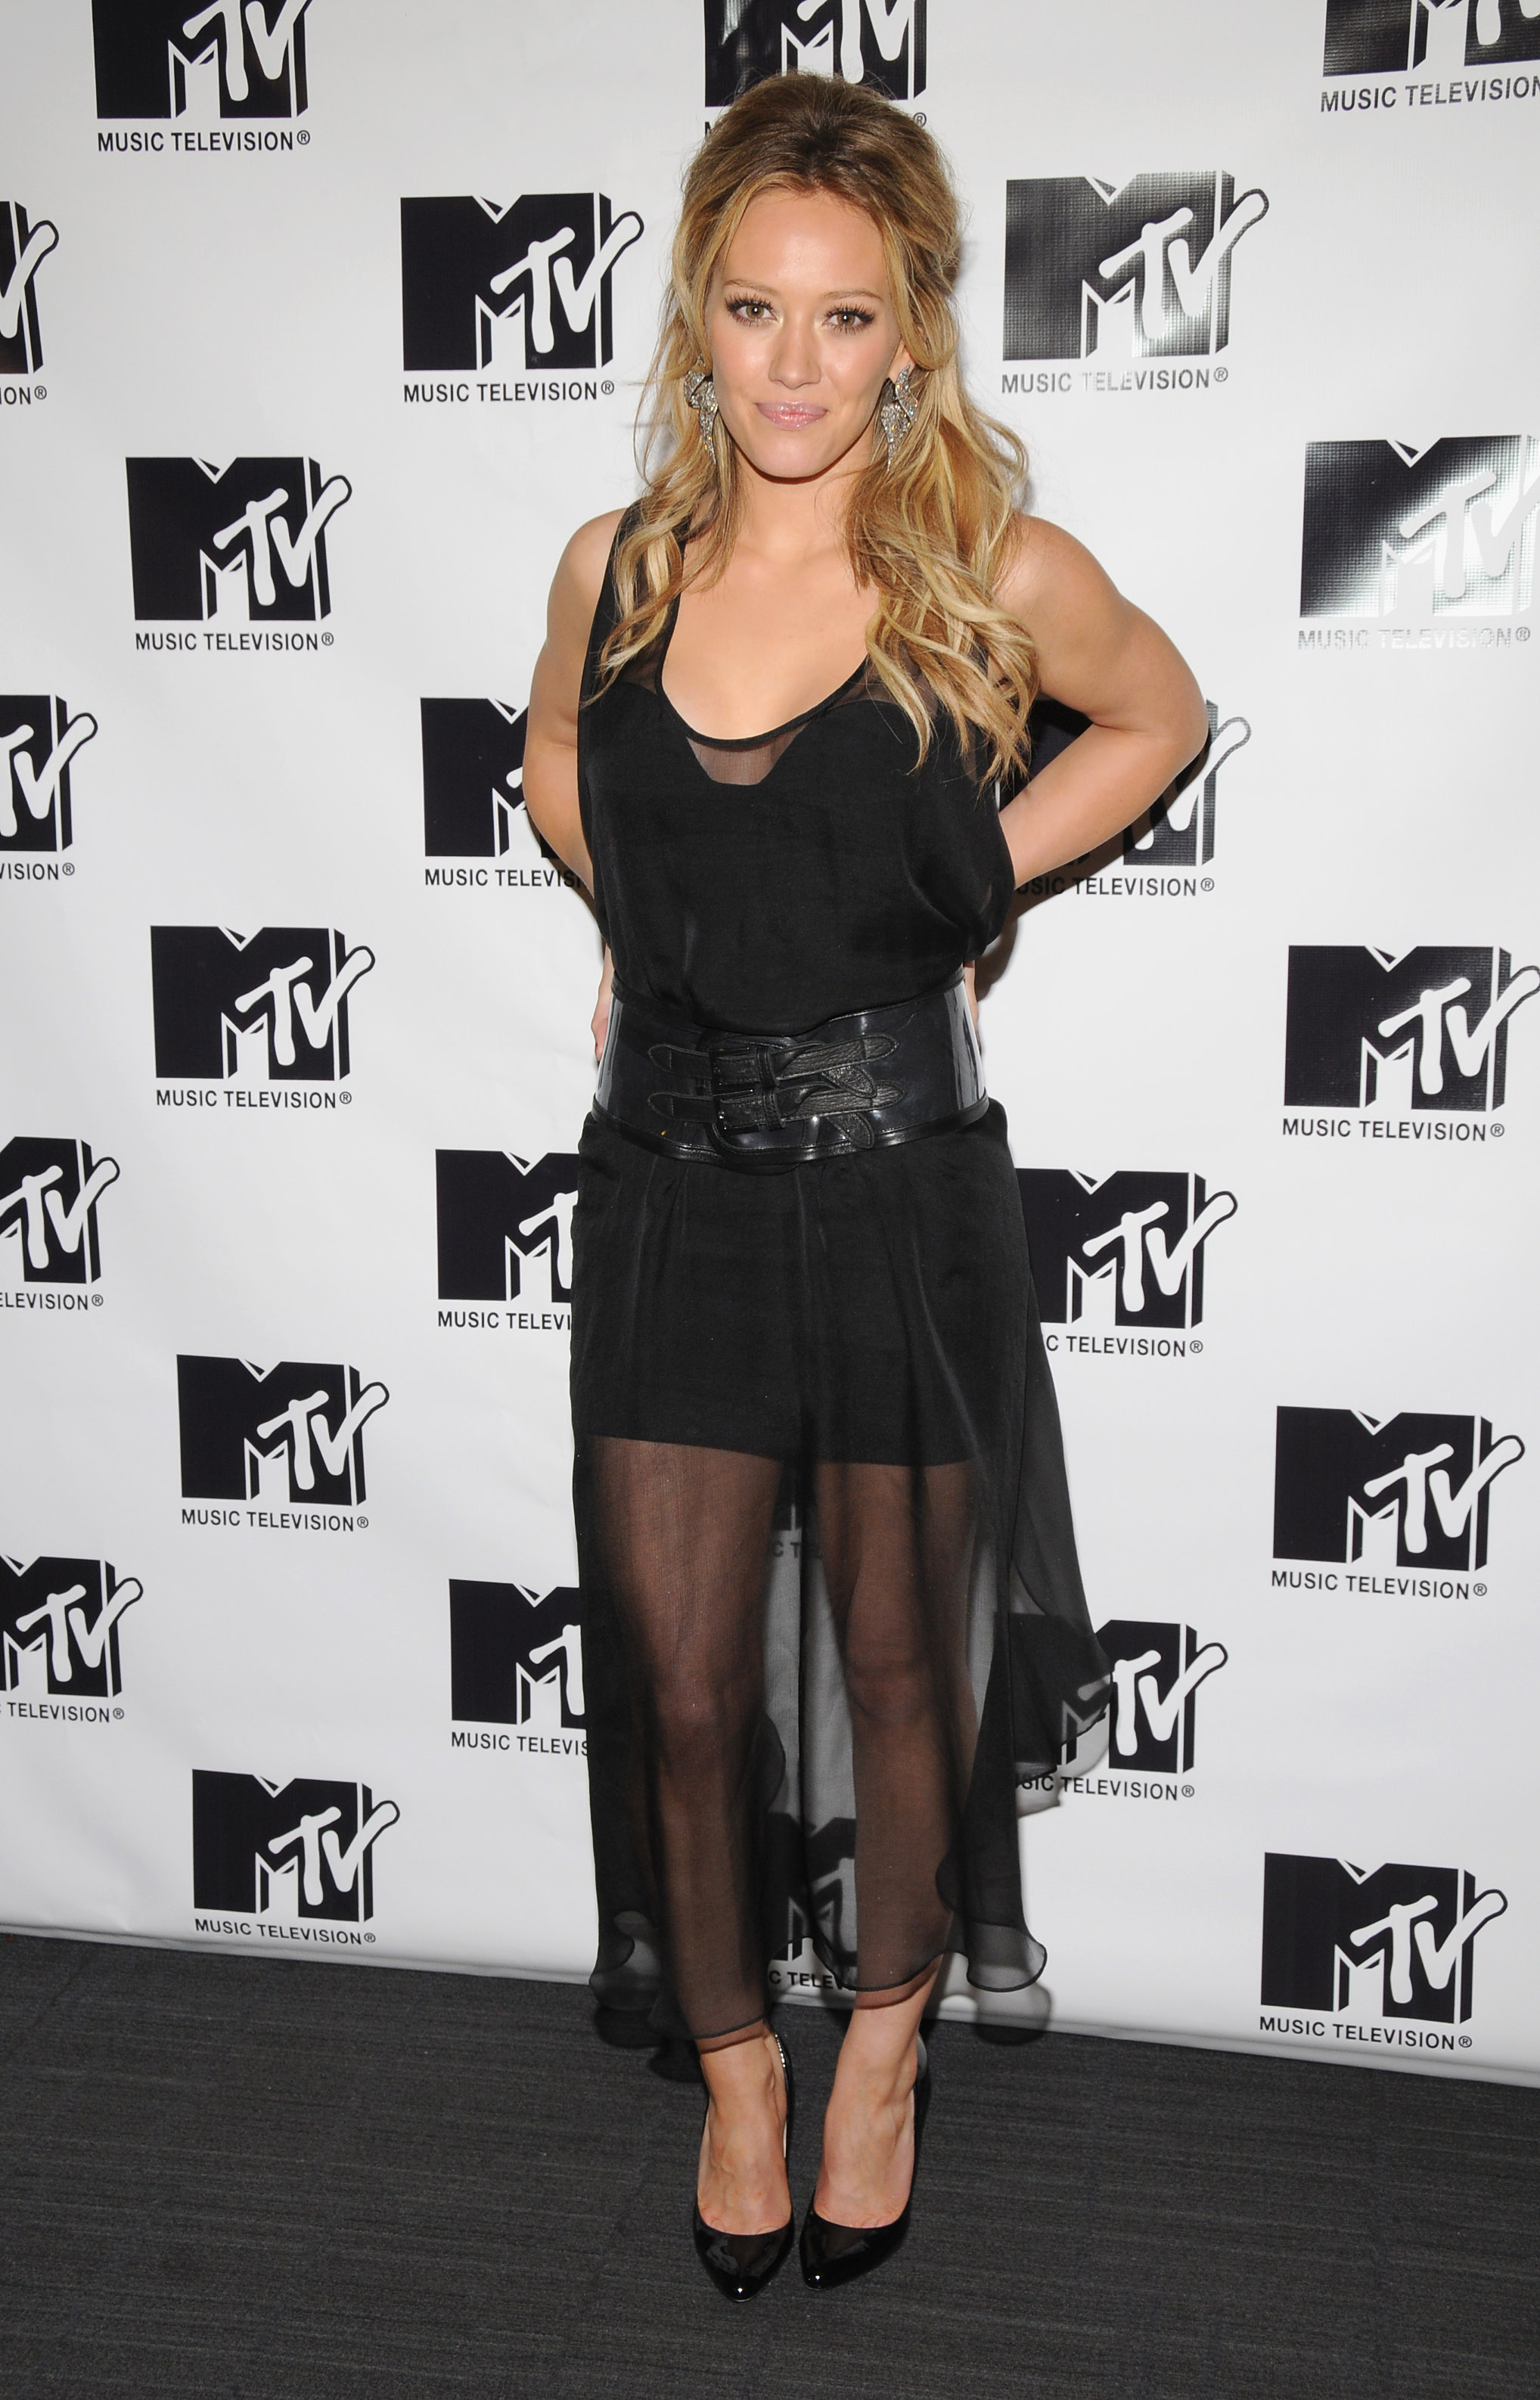 04808_Celebutopia-Hilary_Duff-MTV5s_TRL_Total_Finale_Live-07_122_469lo.jpg